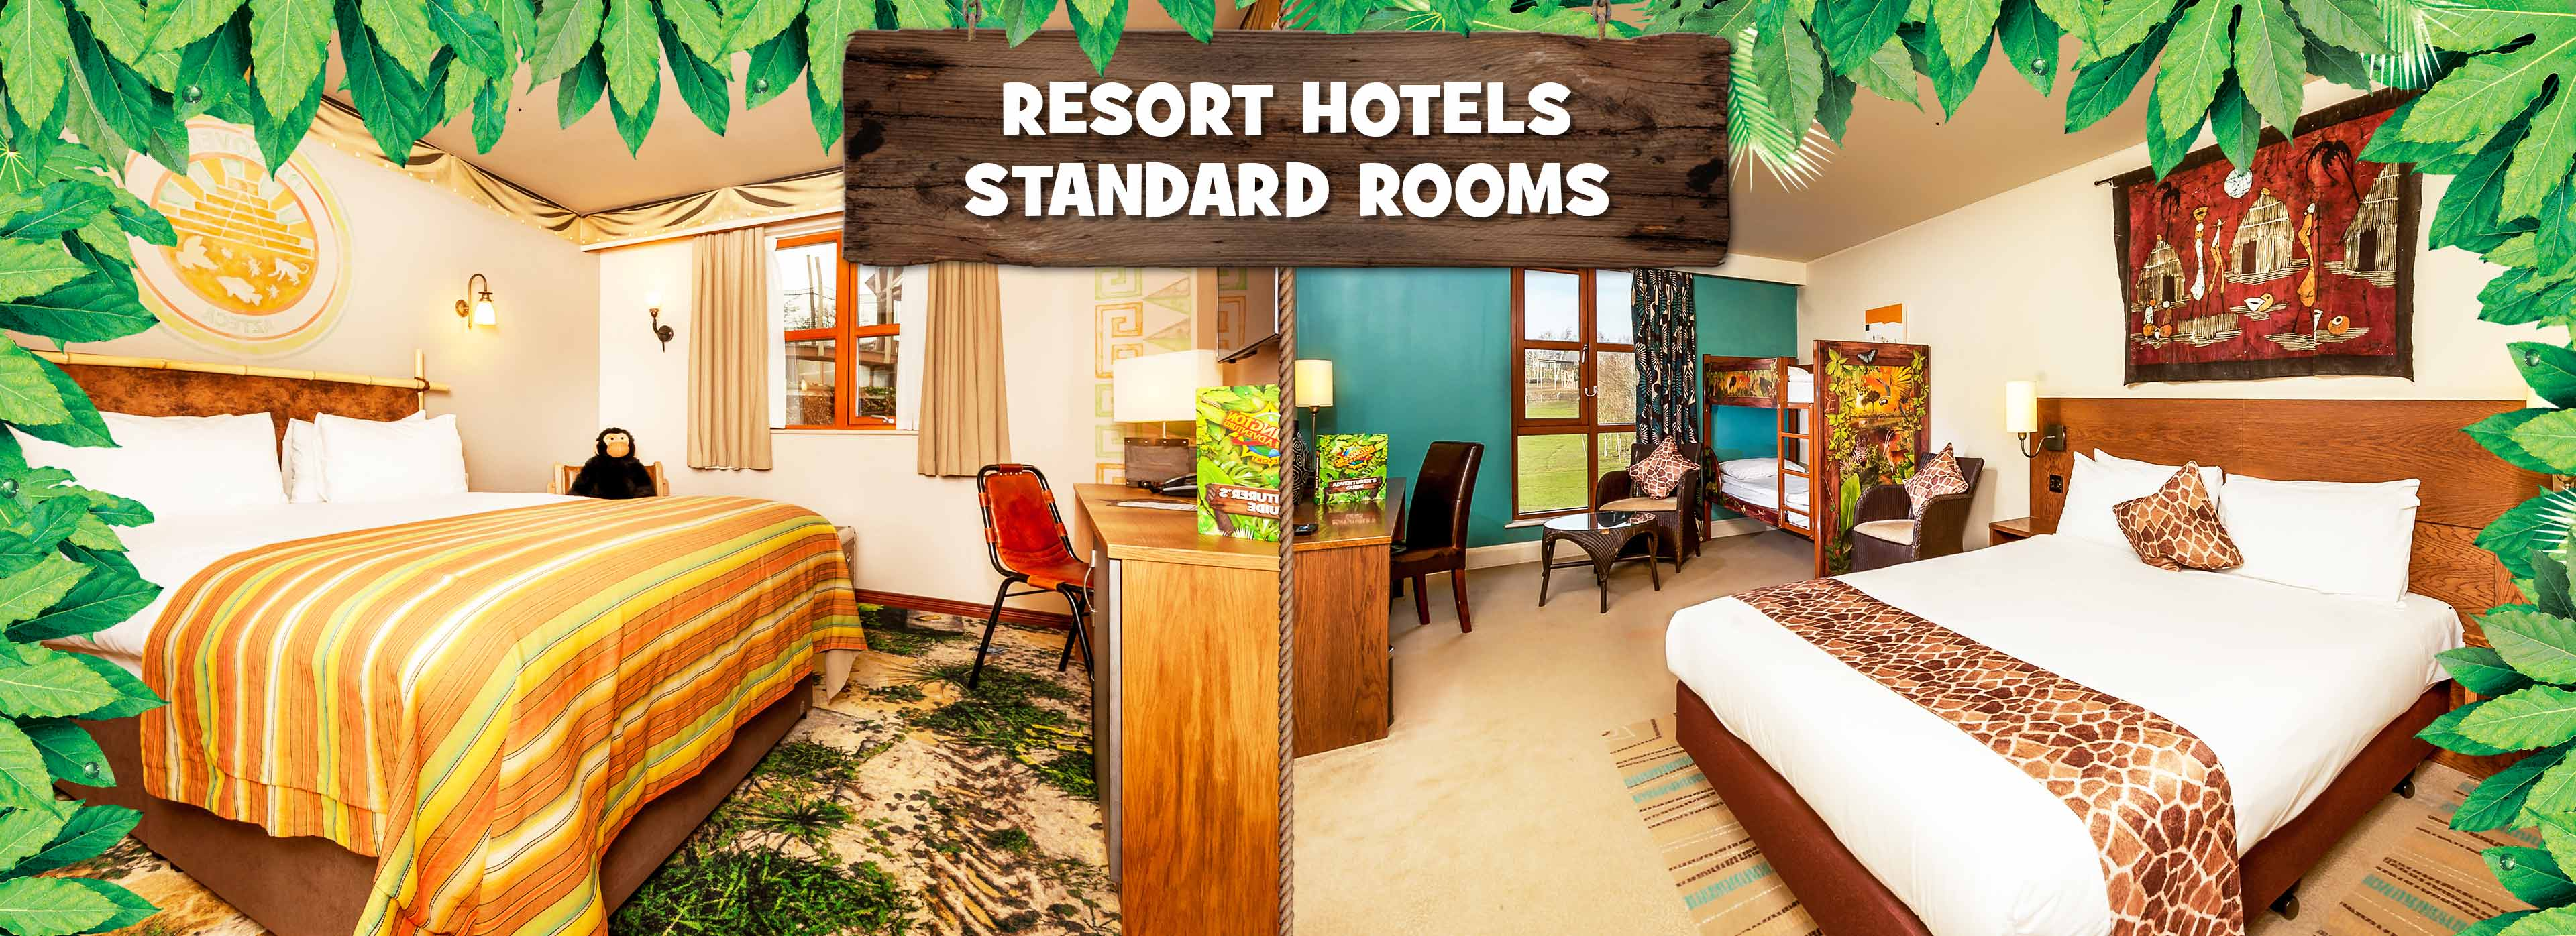 Standard rooms at the Chessington World of Adventures Resort